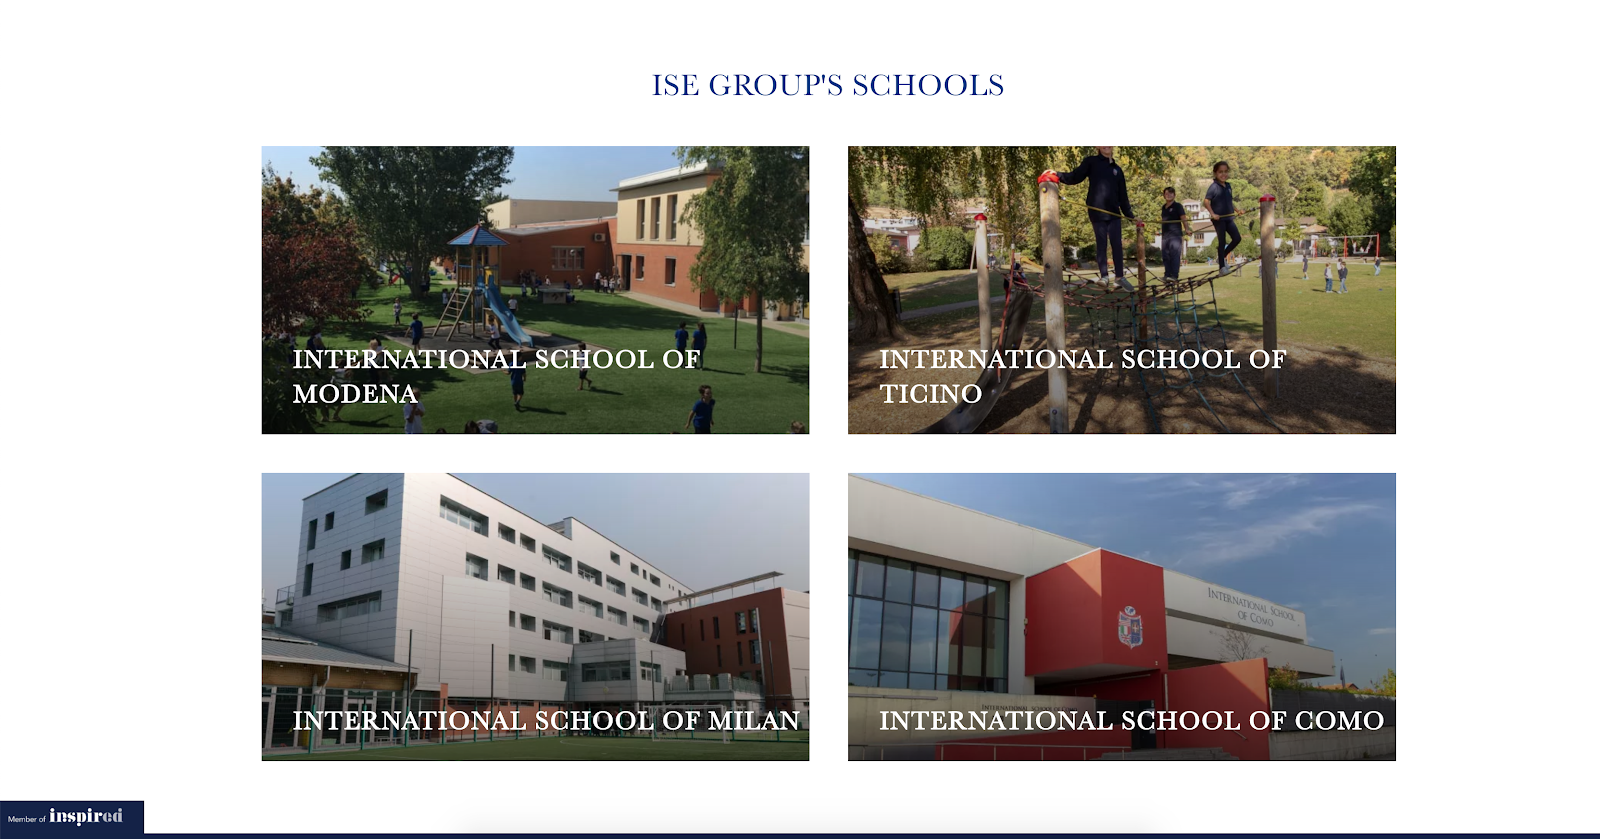 International School of Monza campus images